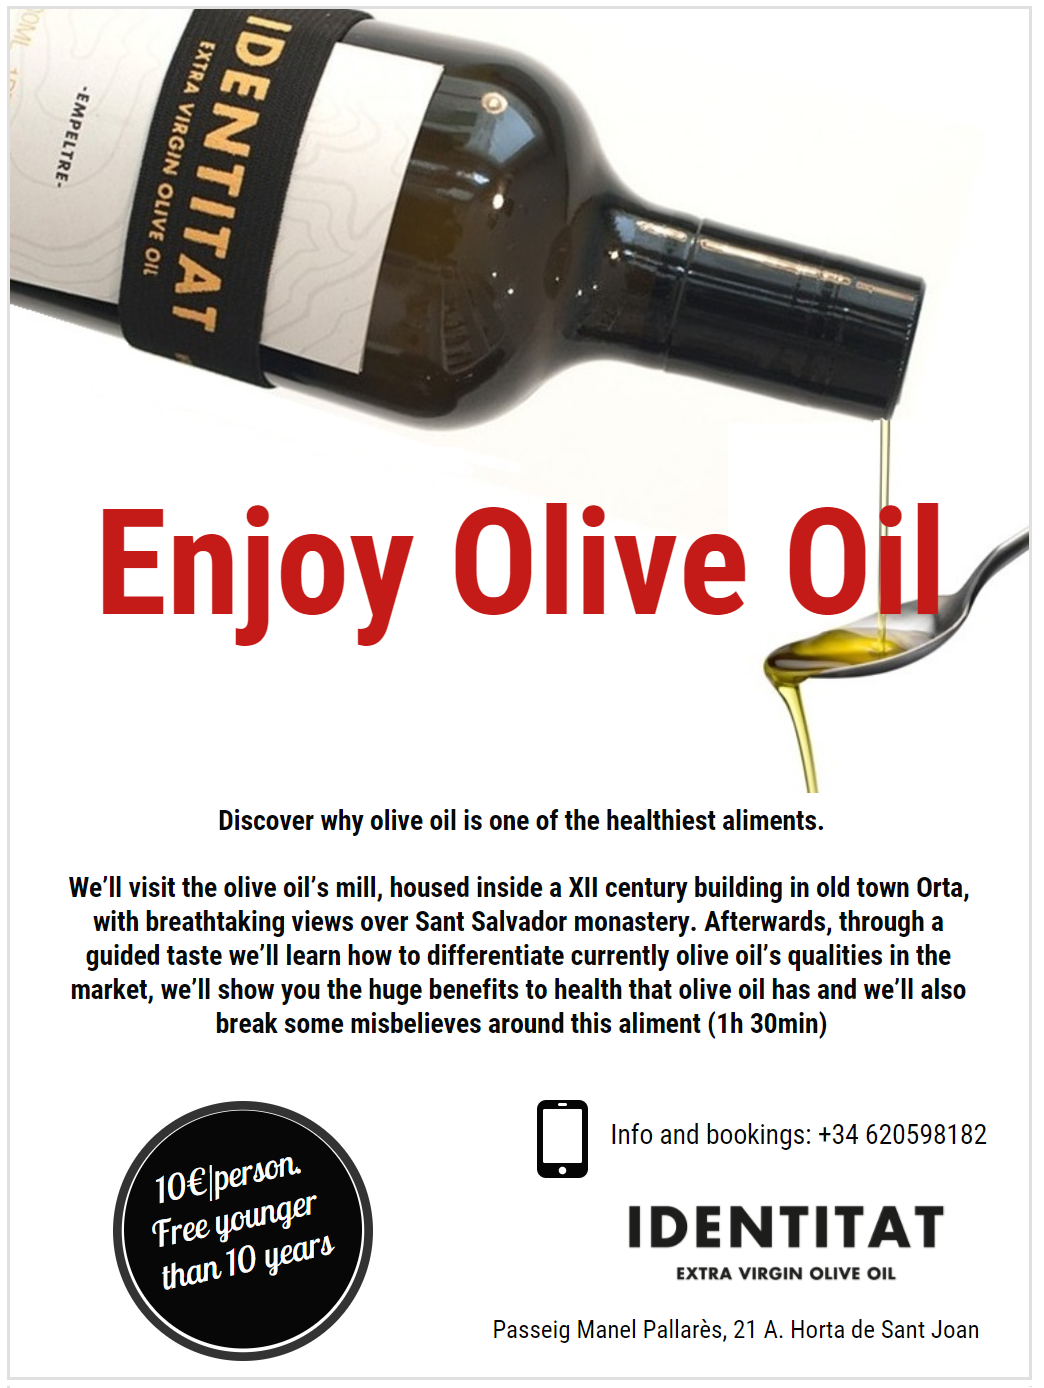 Enjoy olive oil